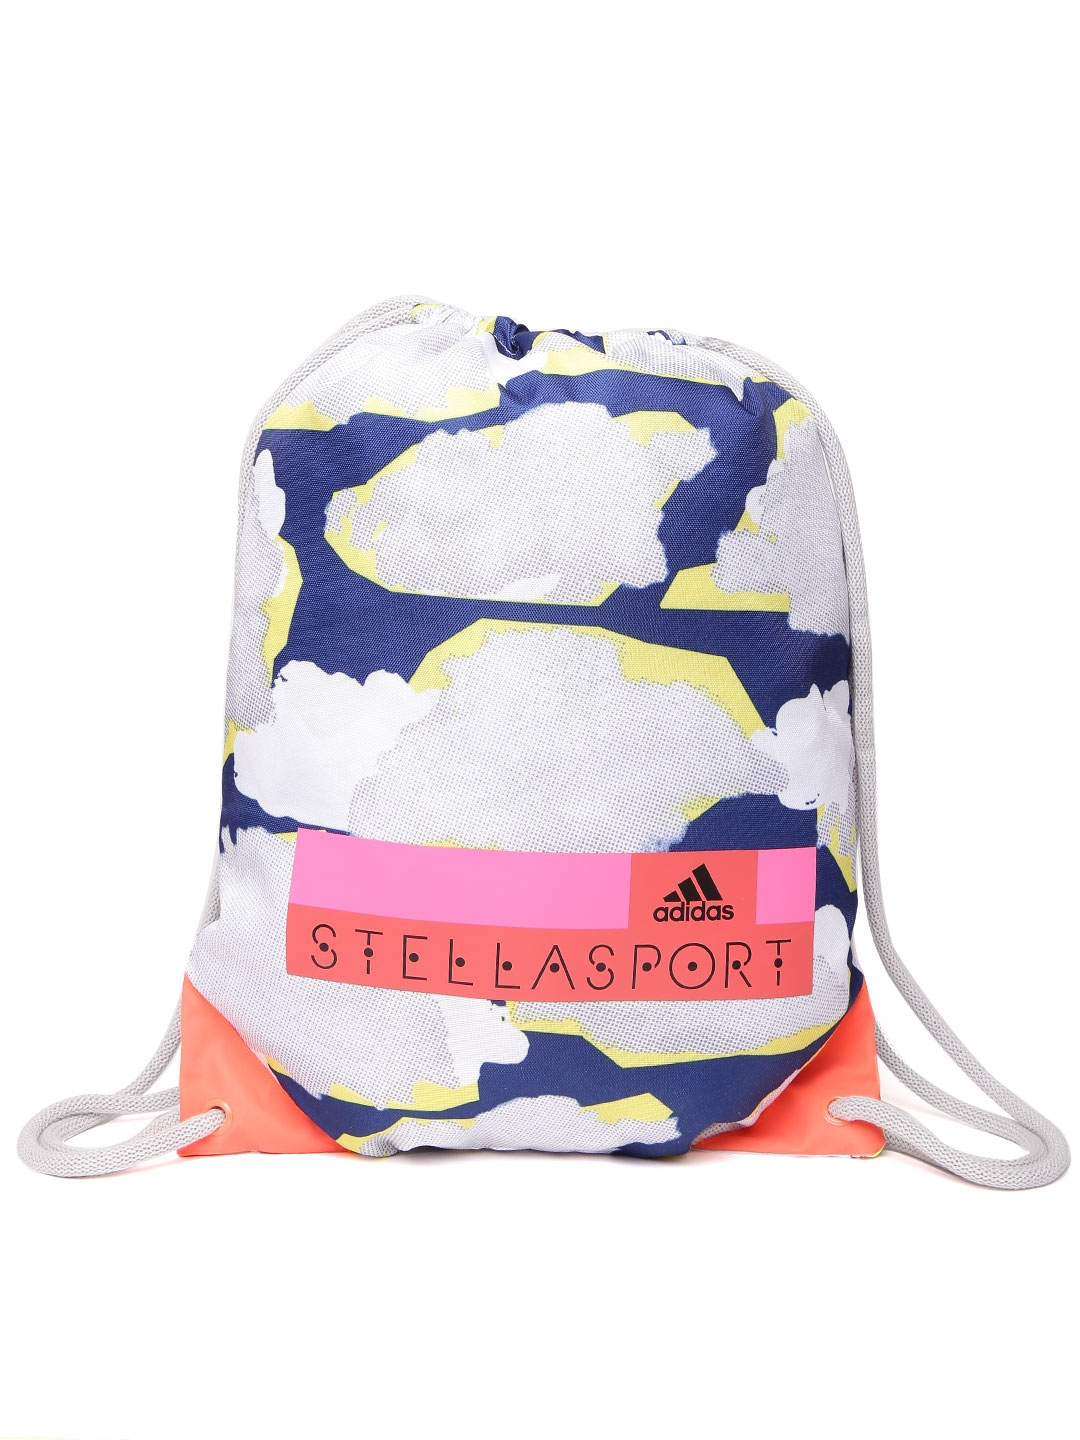 Stellasport by ADIDAS Women Off-White   Blue SC Gymbag Printed Backpack fd0e35fb49295